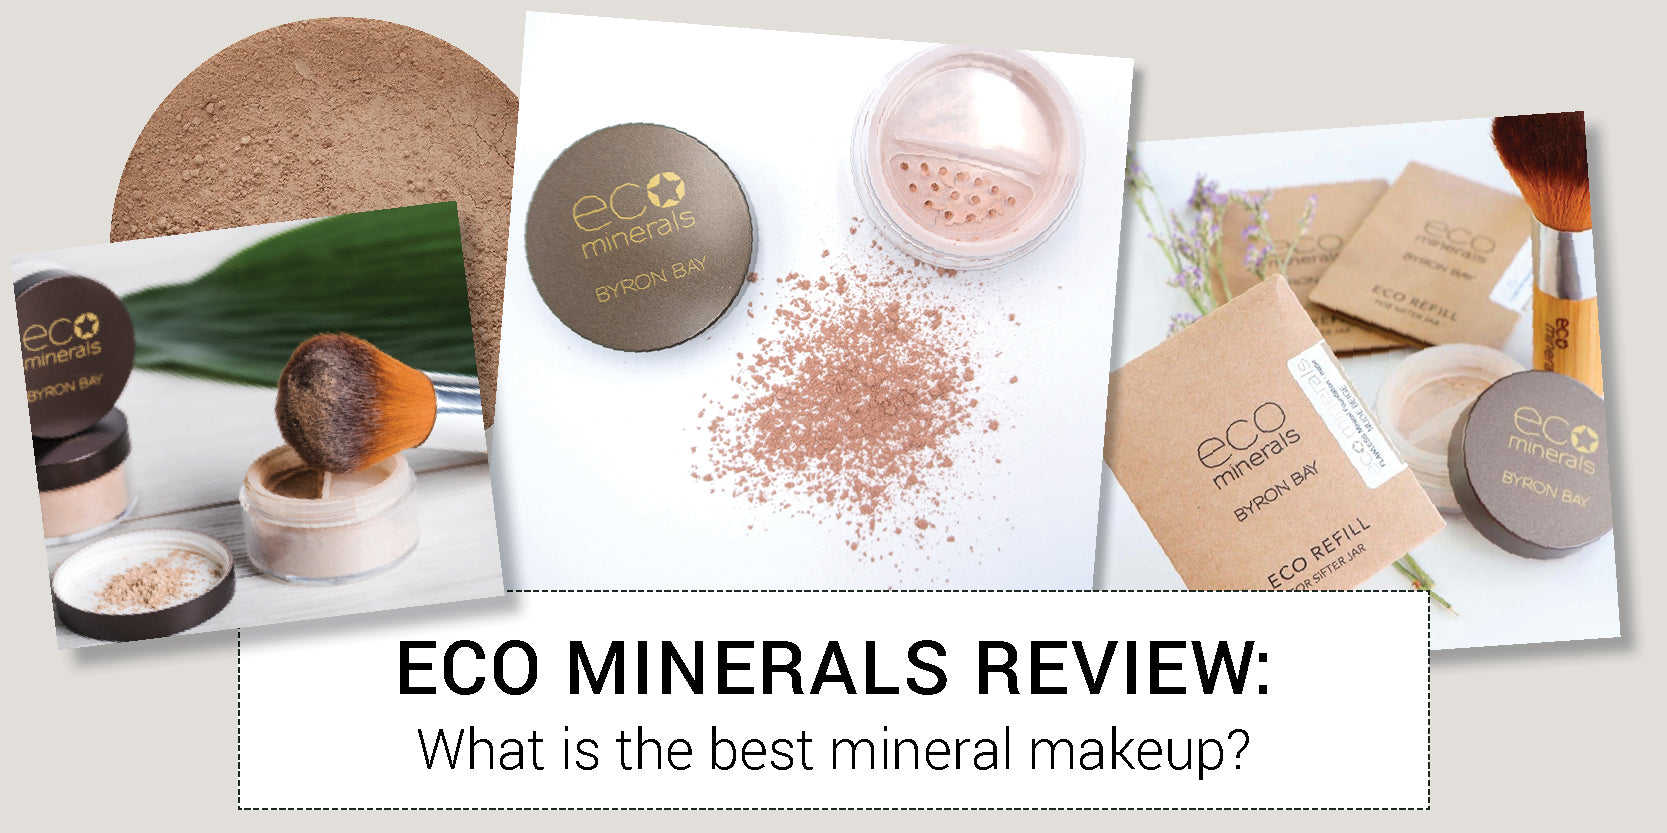 Eco Minerals Review: What is the best mineral makeup?